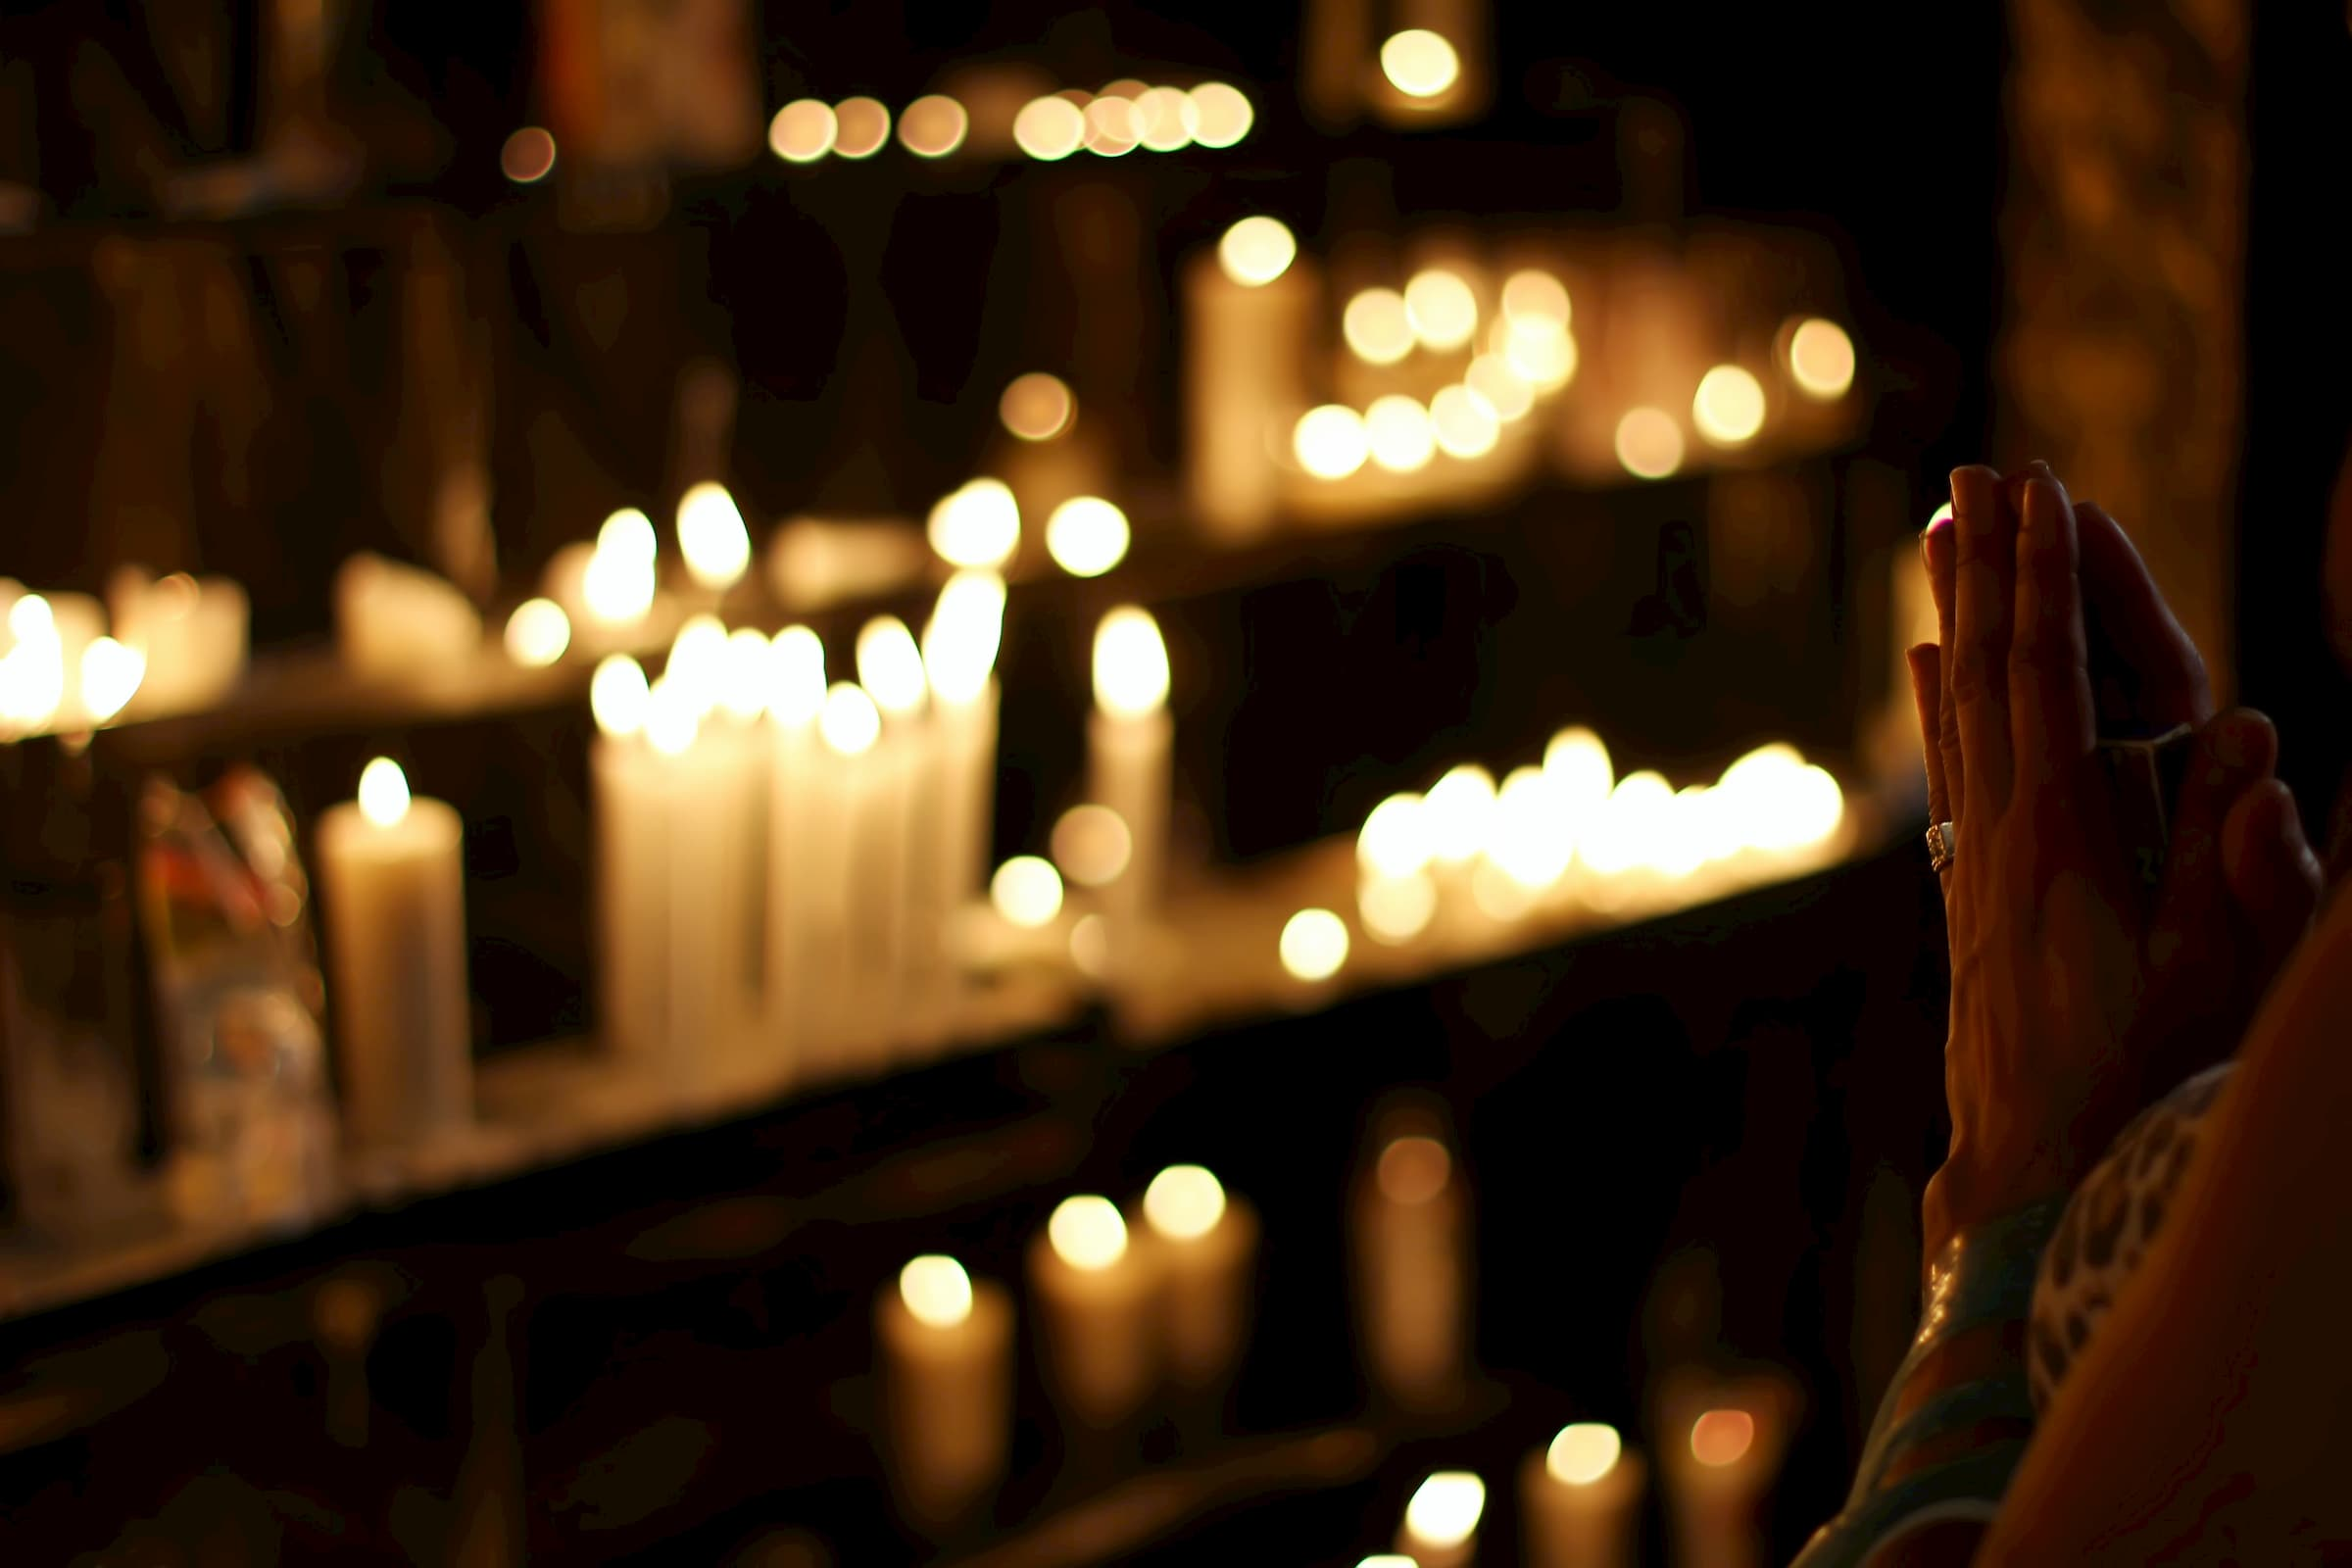 blurred out dark photo of candlelight candle altar and woman praying with prayer hands in the dark